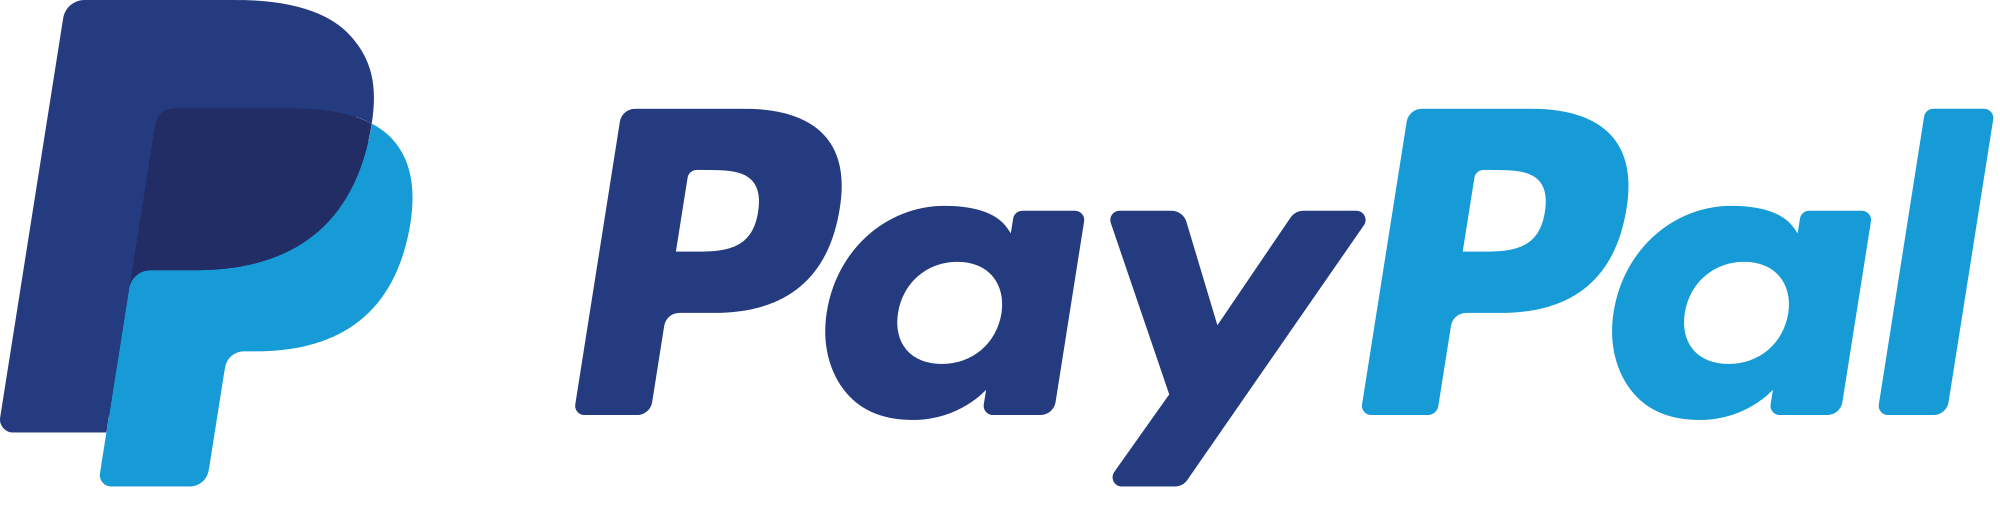 Square vs PayPal - when to use PayPal